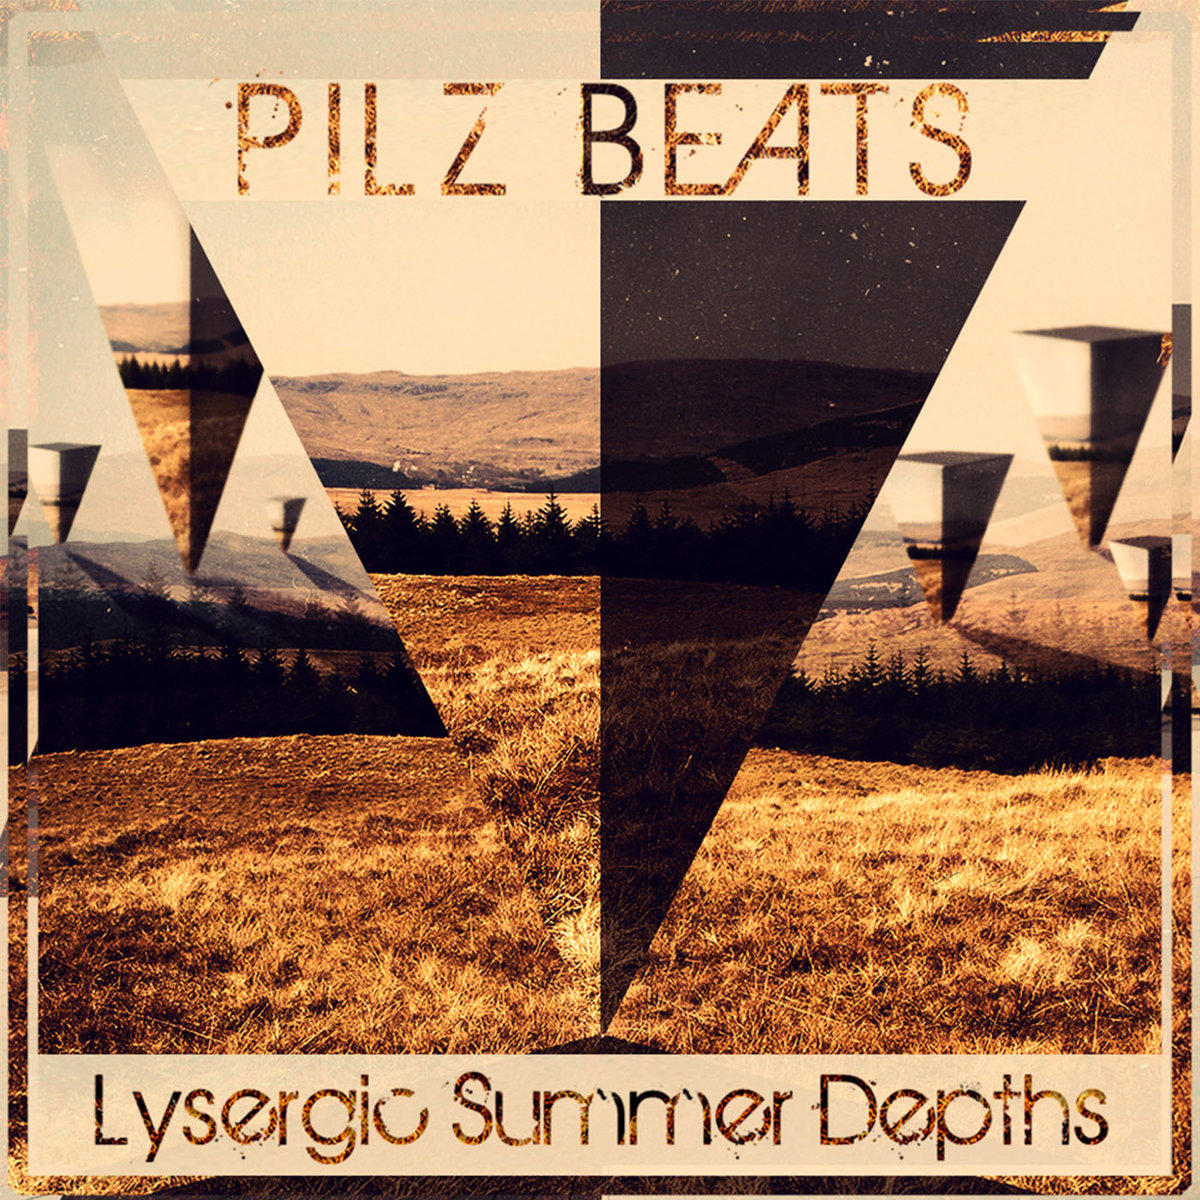 Pilz Beats - I Want to Go to Heaven (but I'm scared to fly) @ 'Lysergic Summer Depths' album (bass, downtempo)